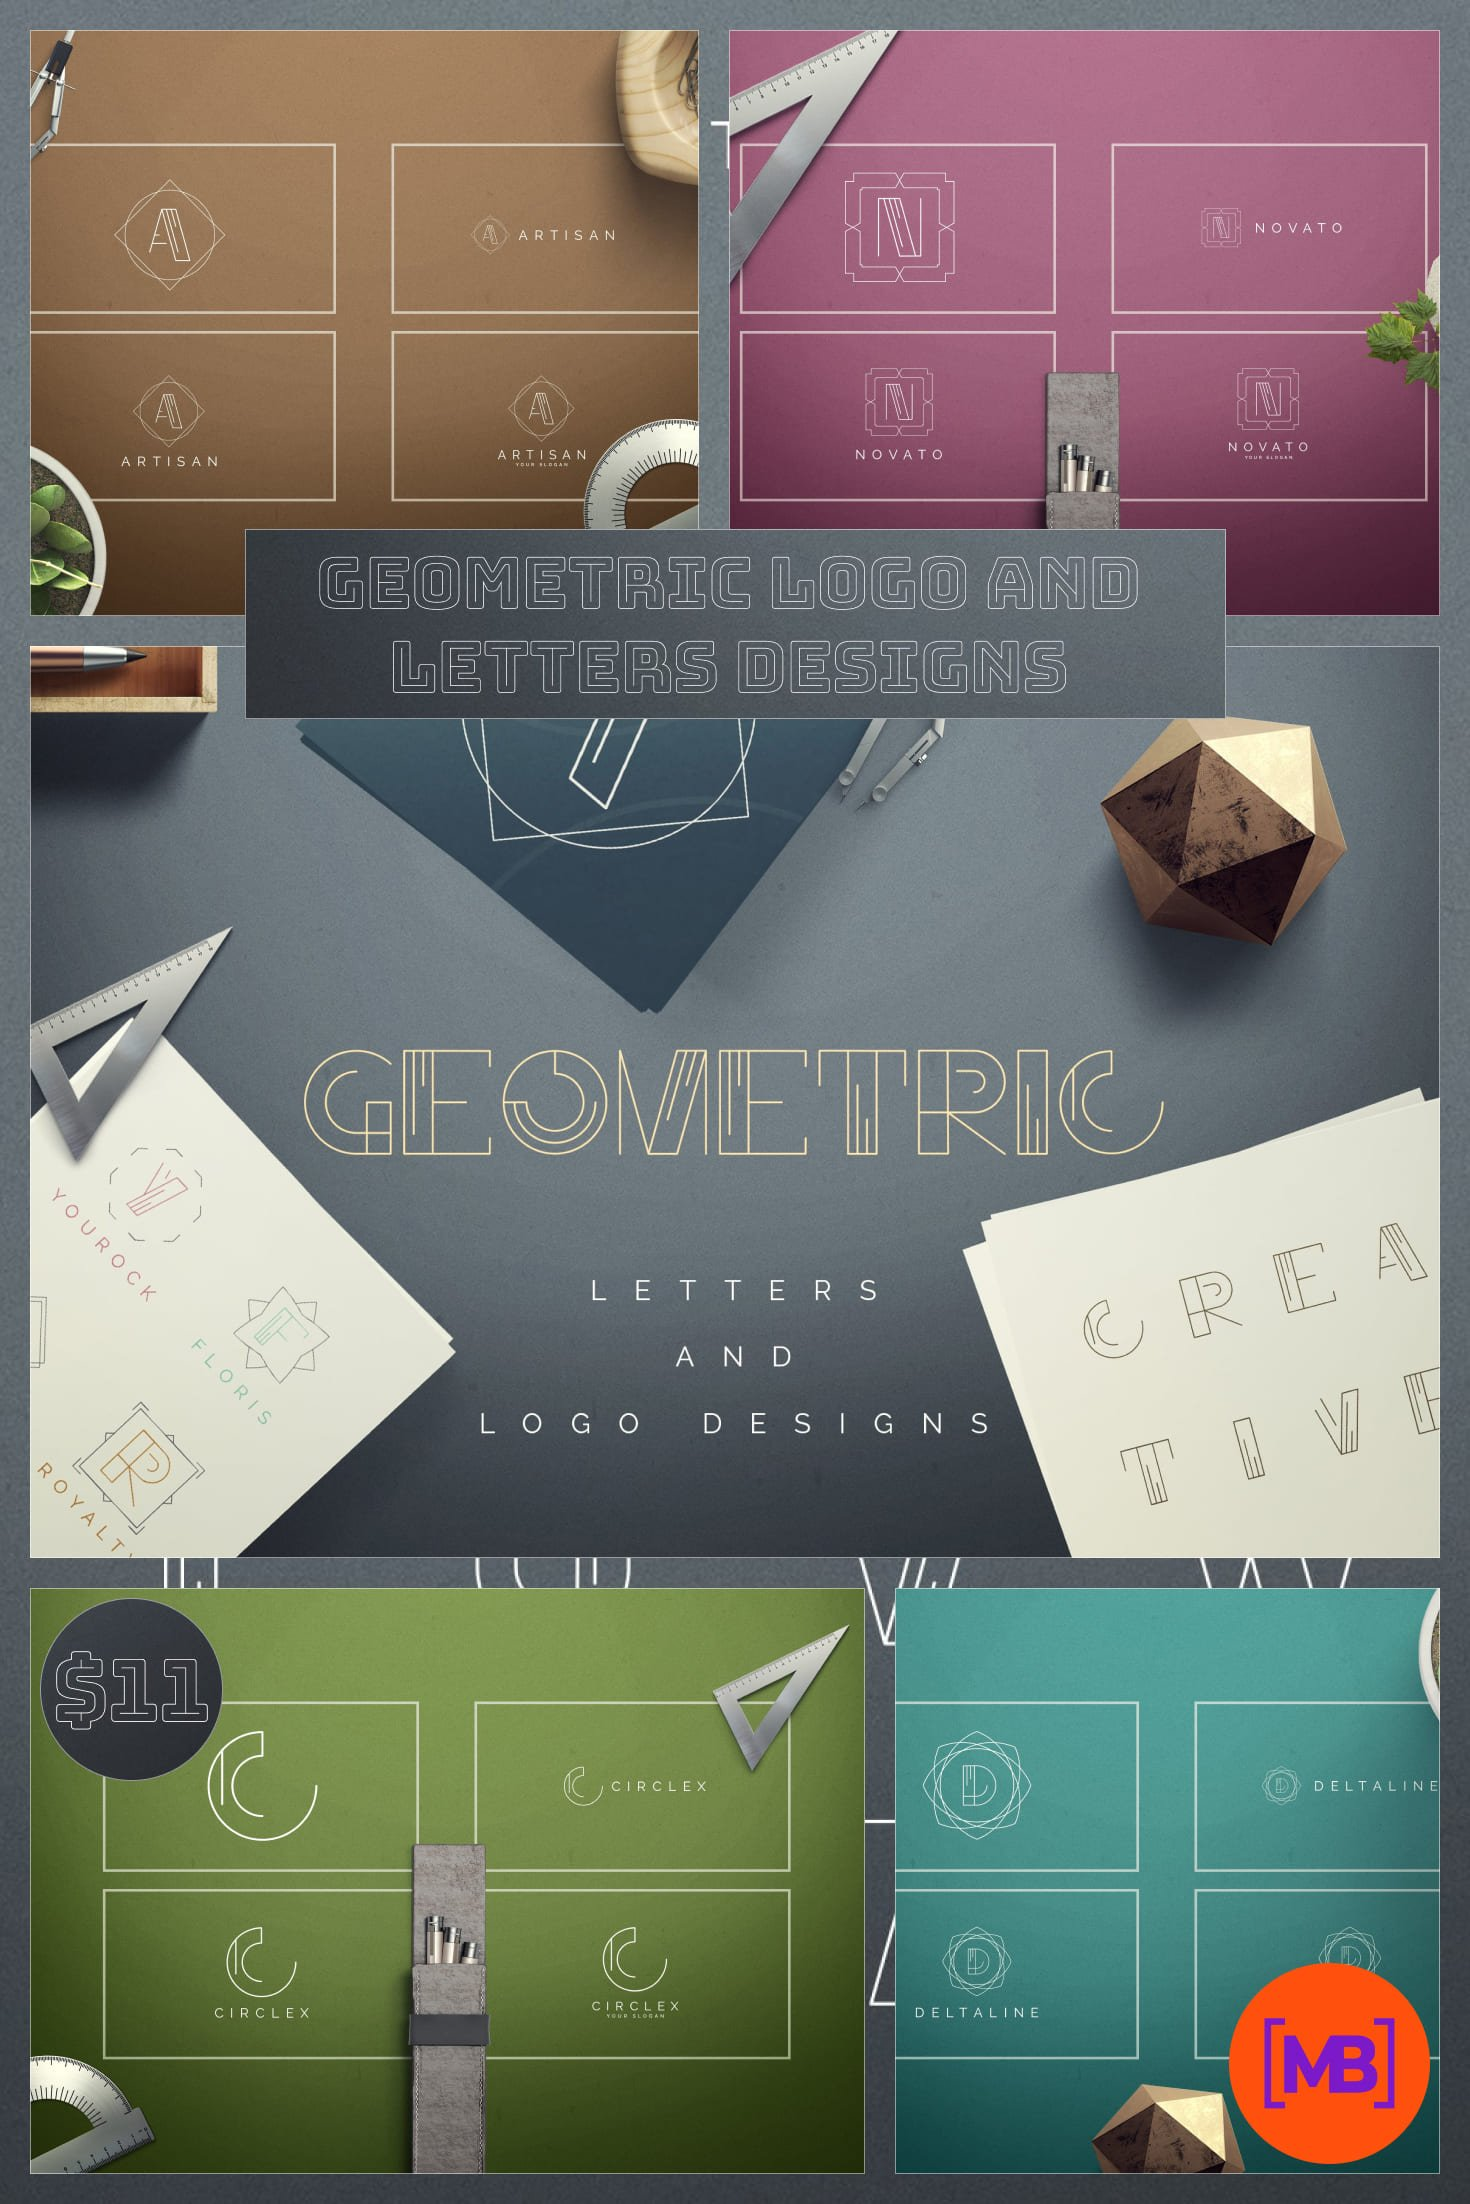 Geometric Logo and Letters Designs - just $5. Collage Image.